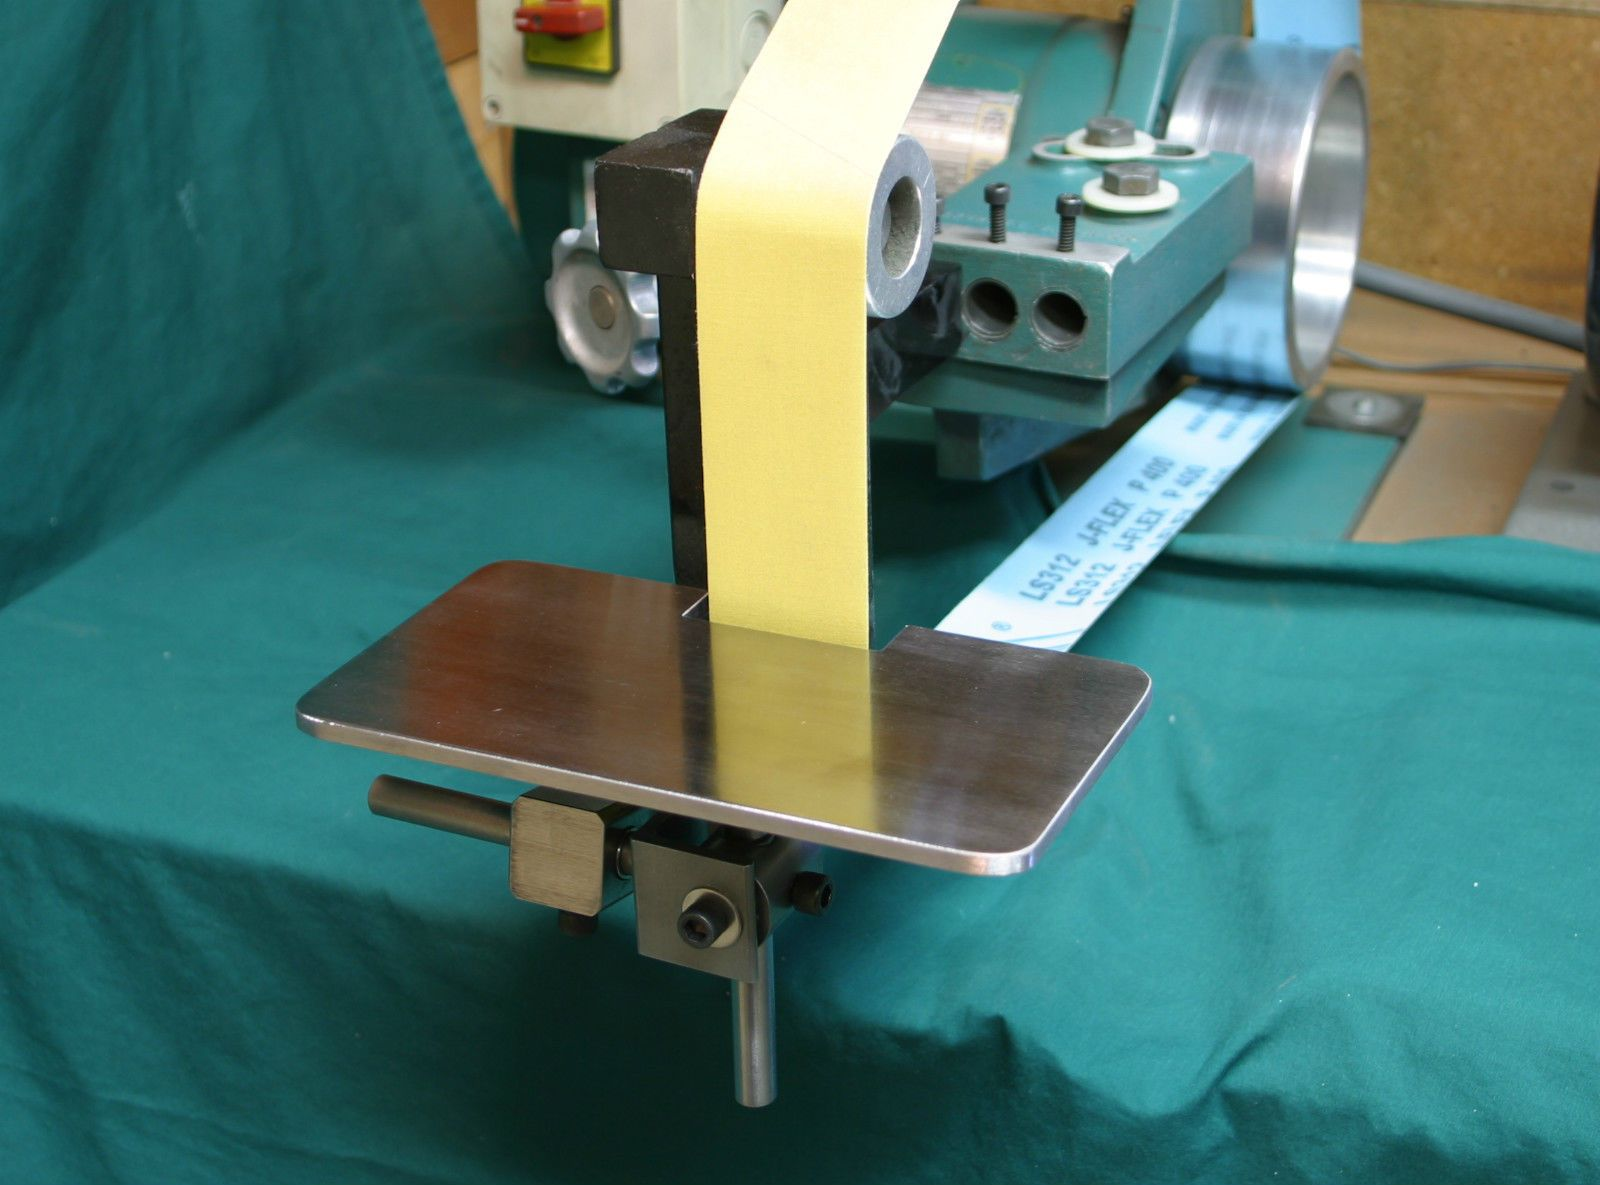 Contact Wheel Amp Flat Platen D D Work Rest For Kmg And G2